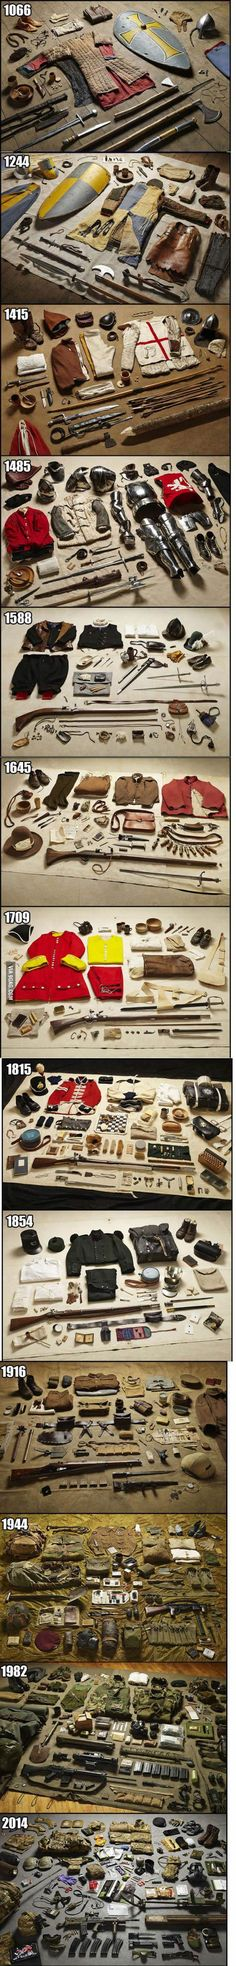 History Discover History of war uniforms in one image. Pretty cool quick visual reference: History of war uniforms in one image Medieval Combat, Armadura Medieval, Templer, Landsknecht, Military History, Military Gear, Military Equipment, Military Uniforms, History Facts